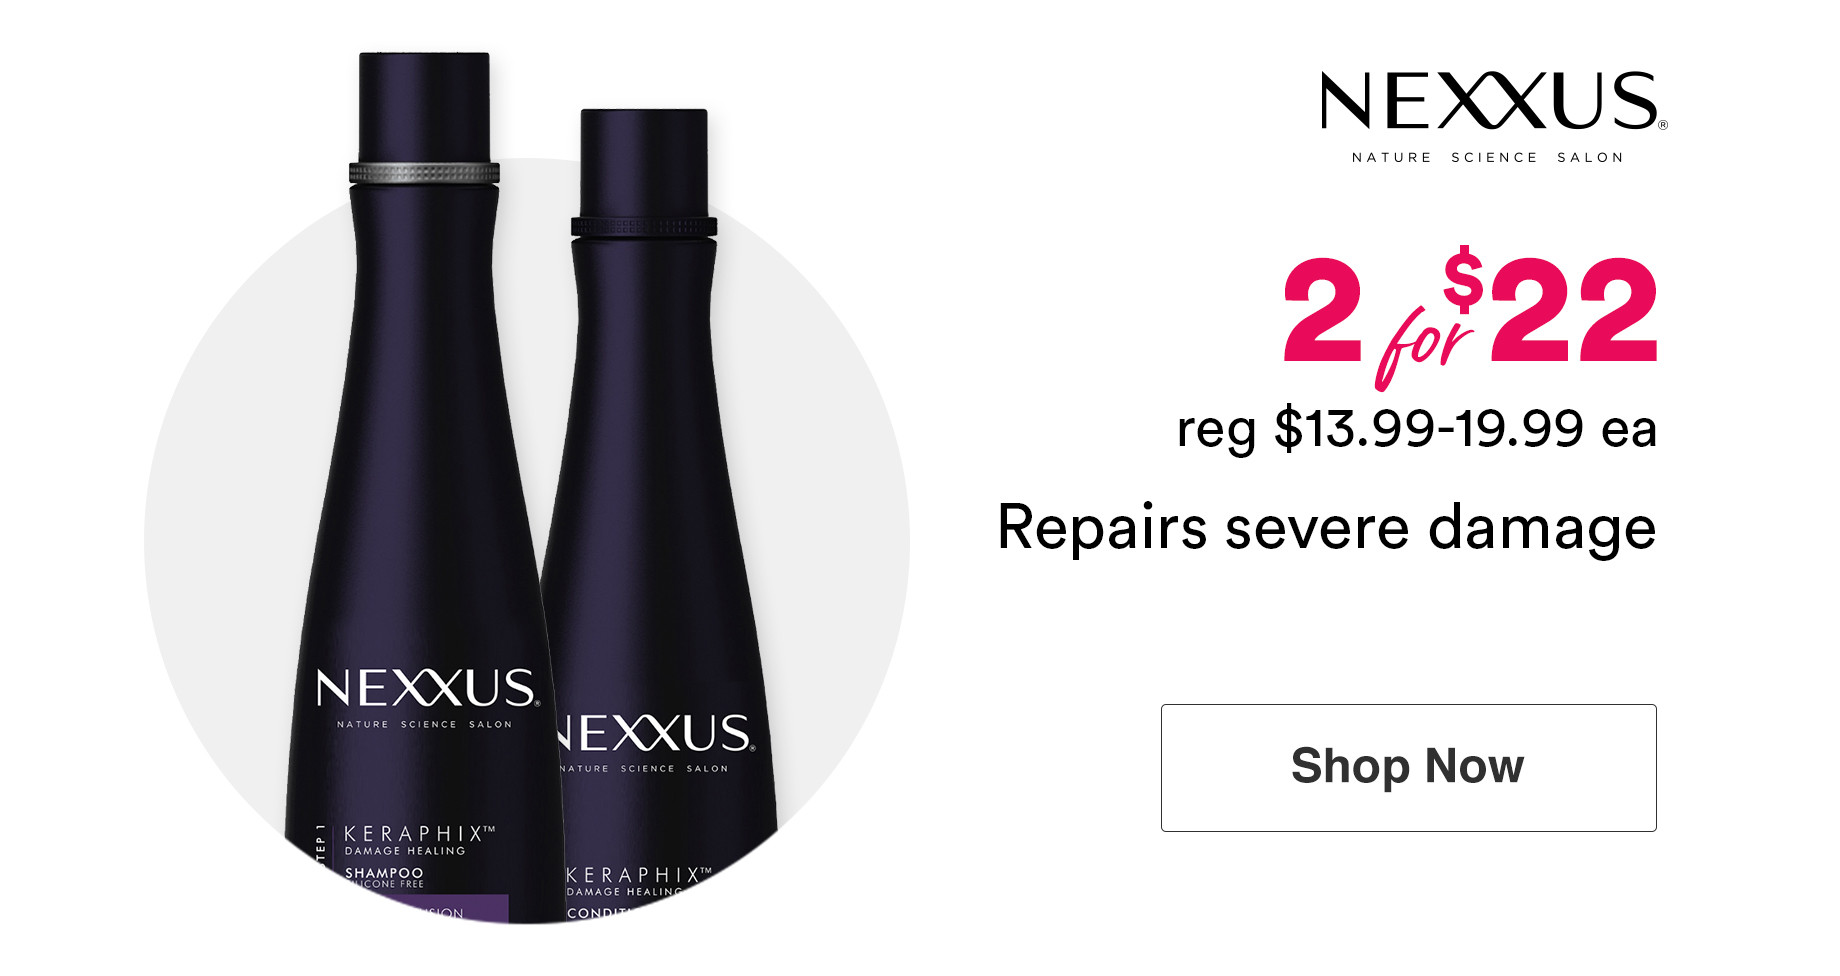 Nexxus Shampoos and Conditioners are now 2 for $22